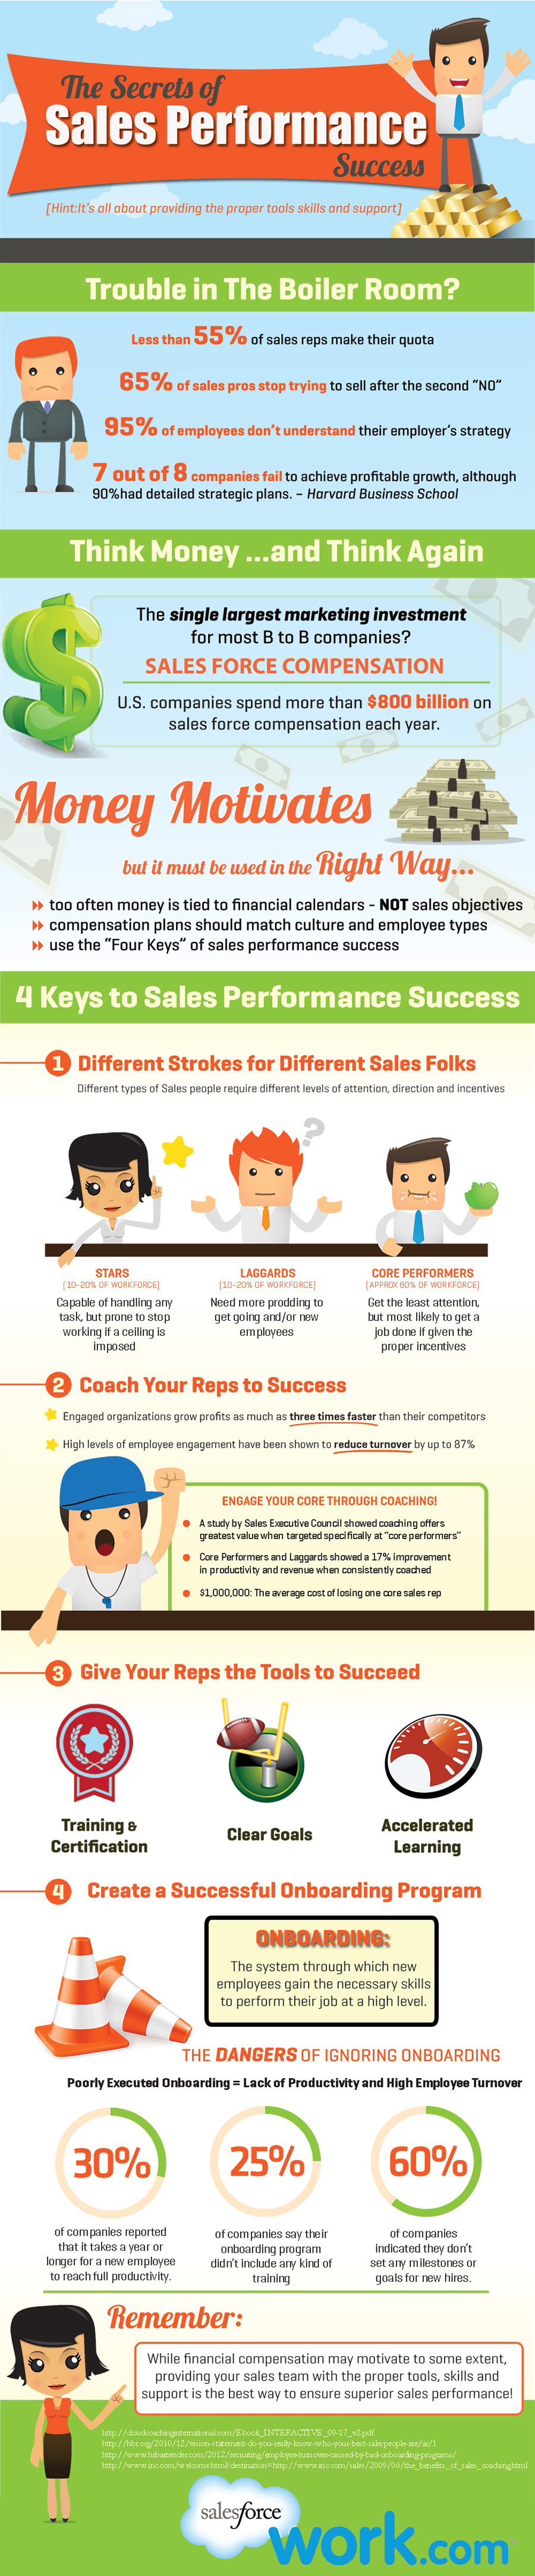 The Secret of Sales Performance